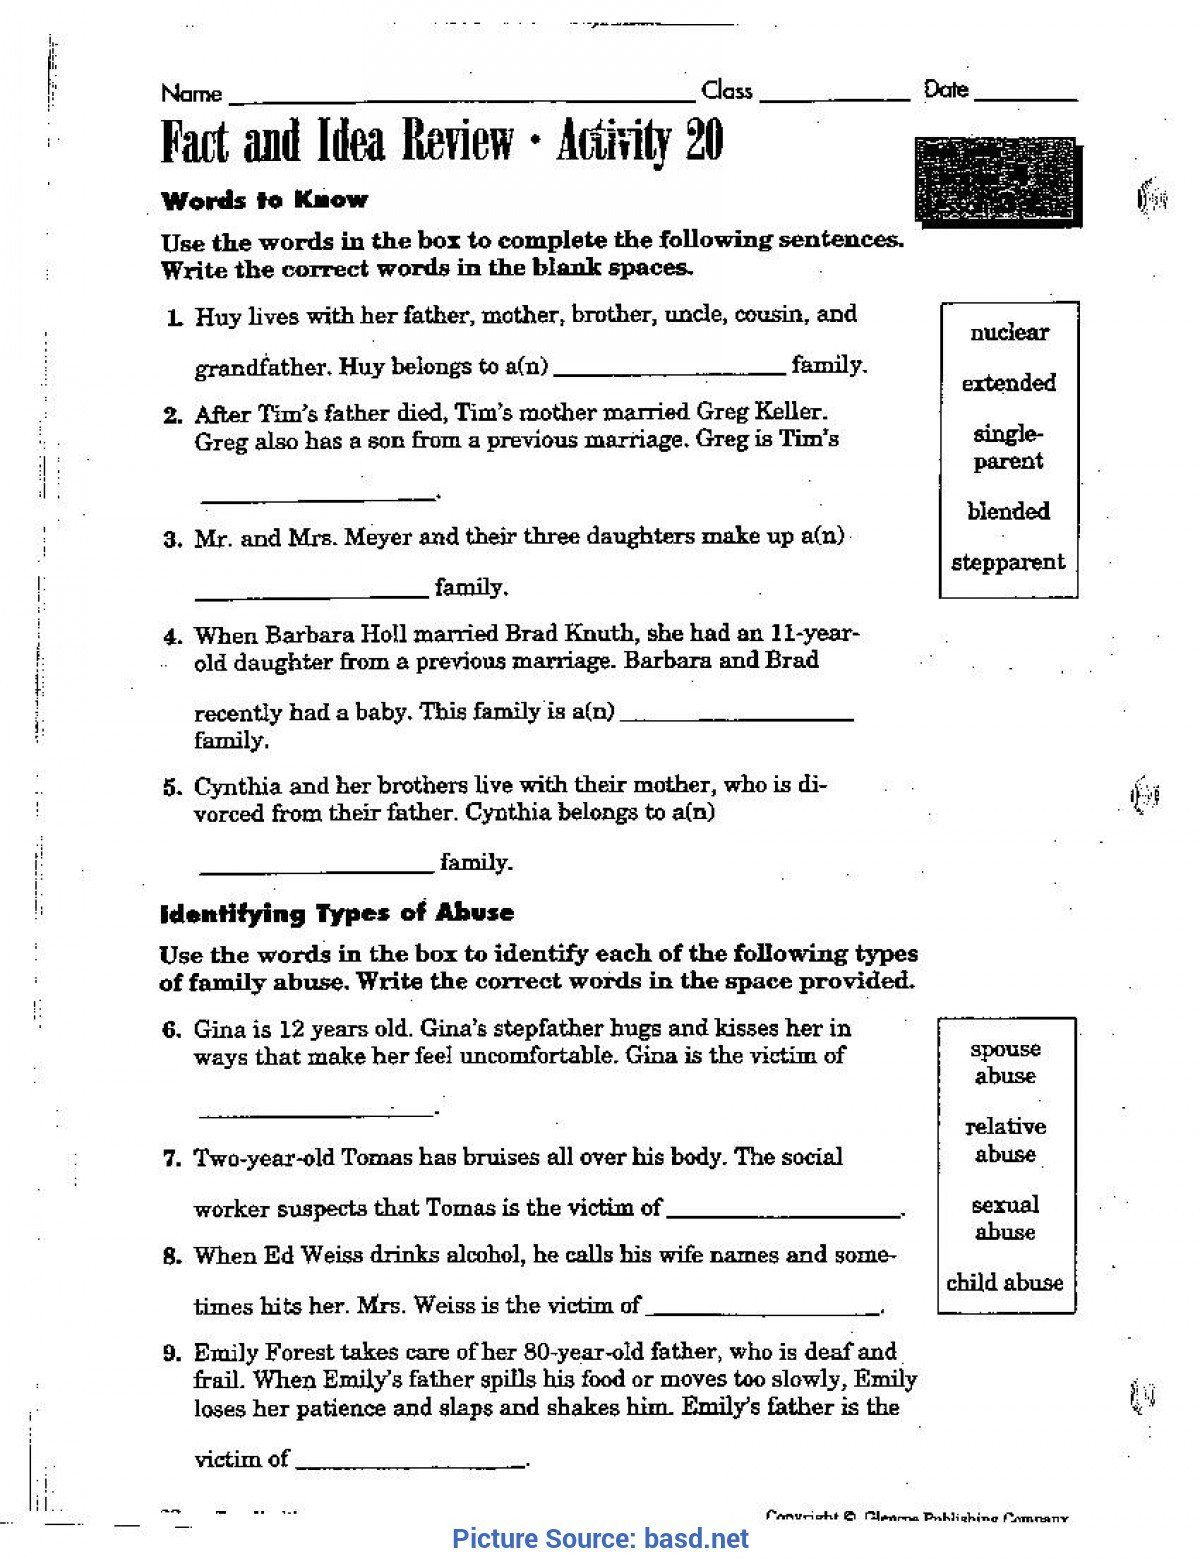 hight resolution of Buddy Or Bully Worksheet   Printable Worksheets and Activities for  Teachers